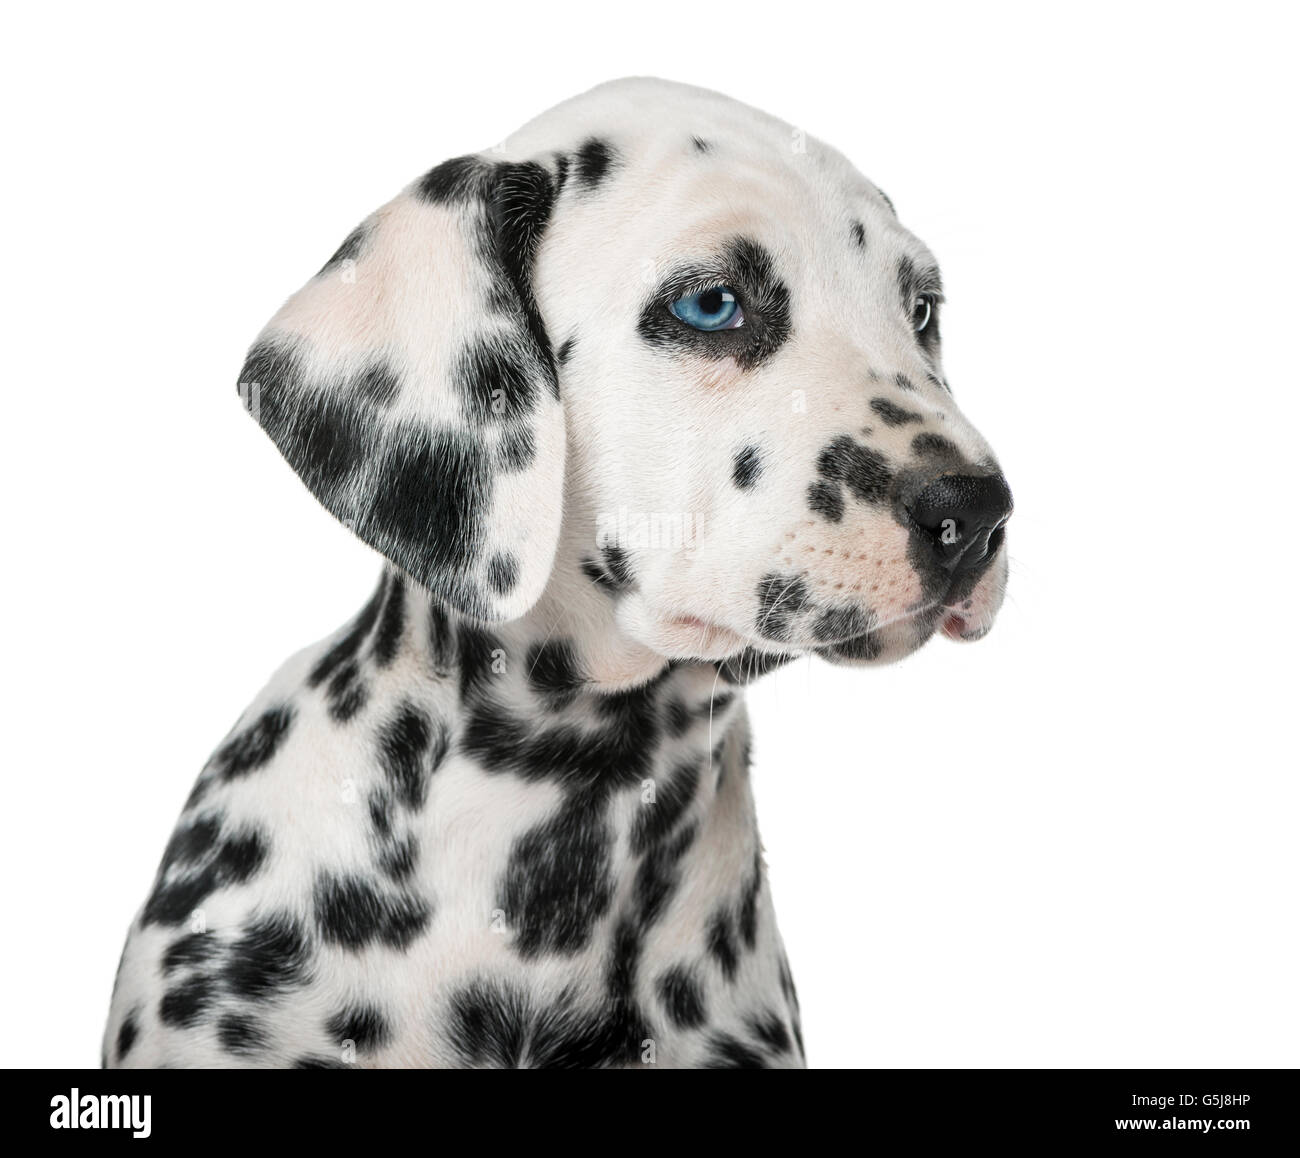 Close-up of a Dalmatian puppy with heterochromia in front of a white background - Stock Image